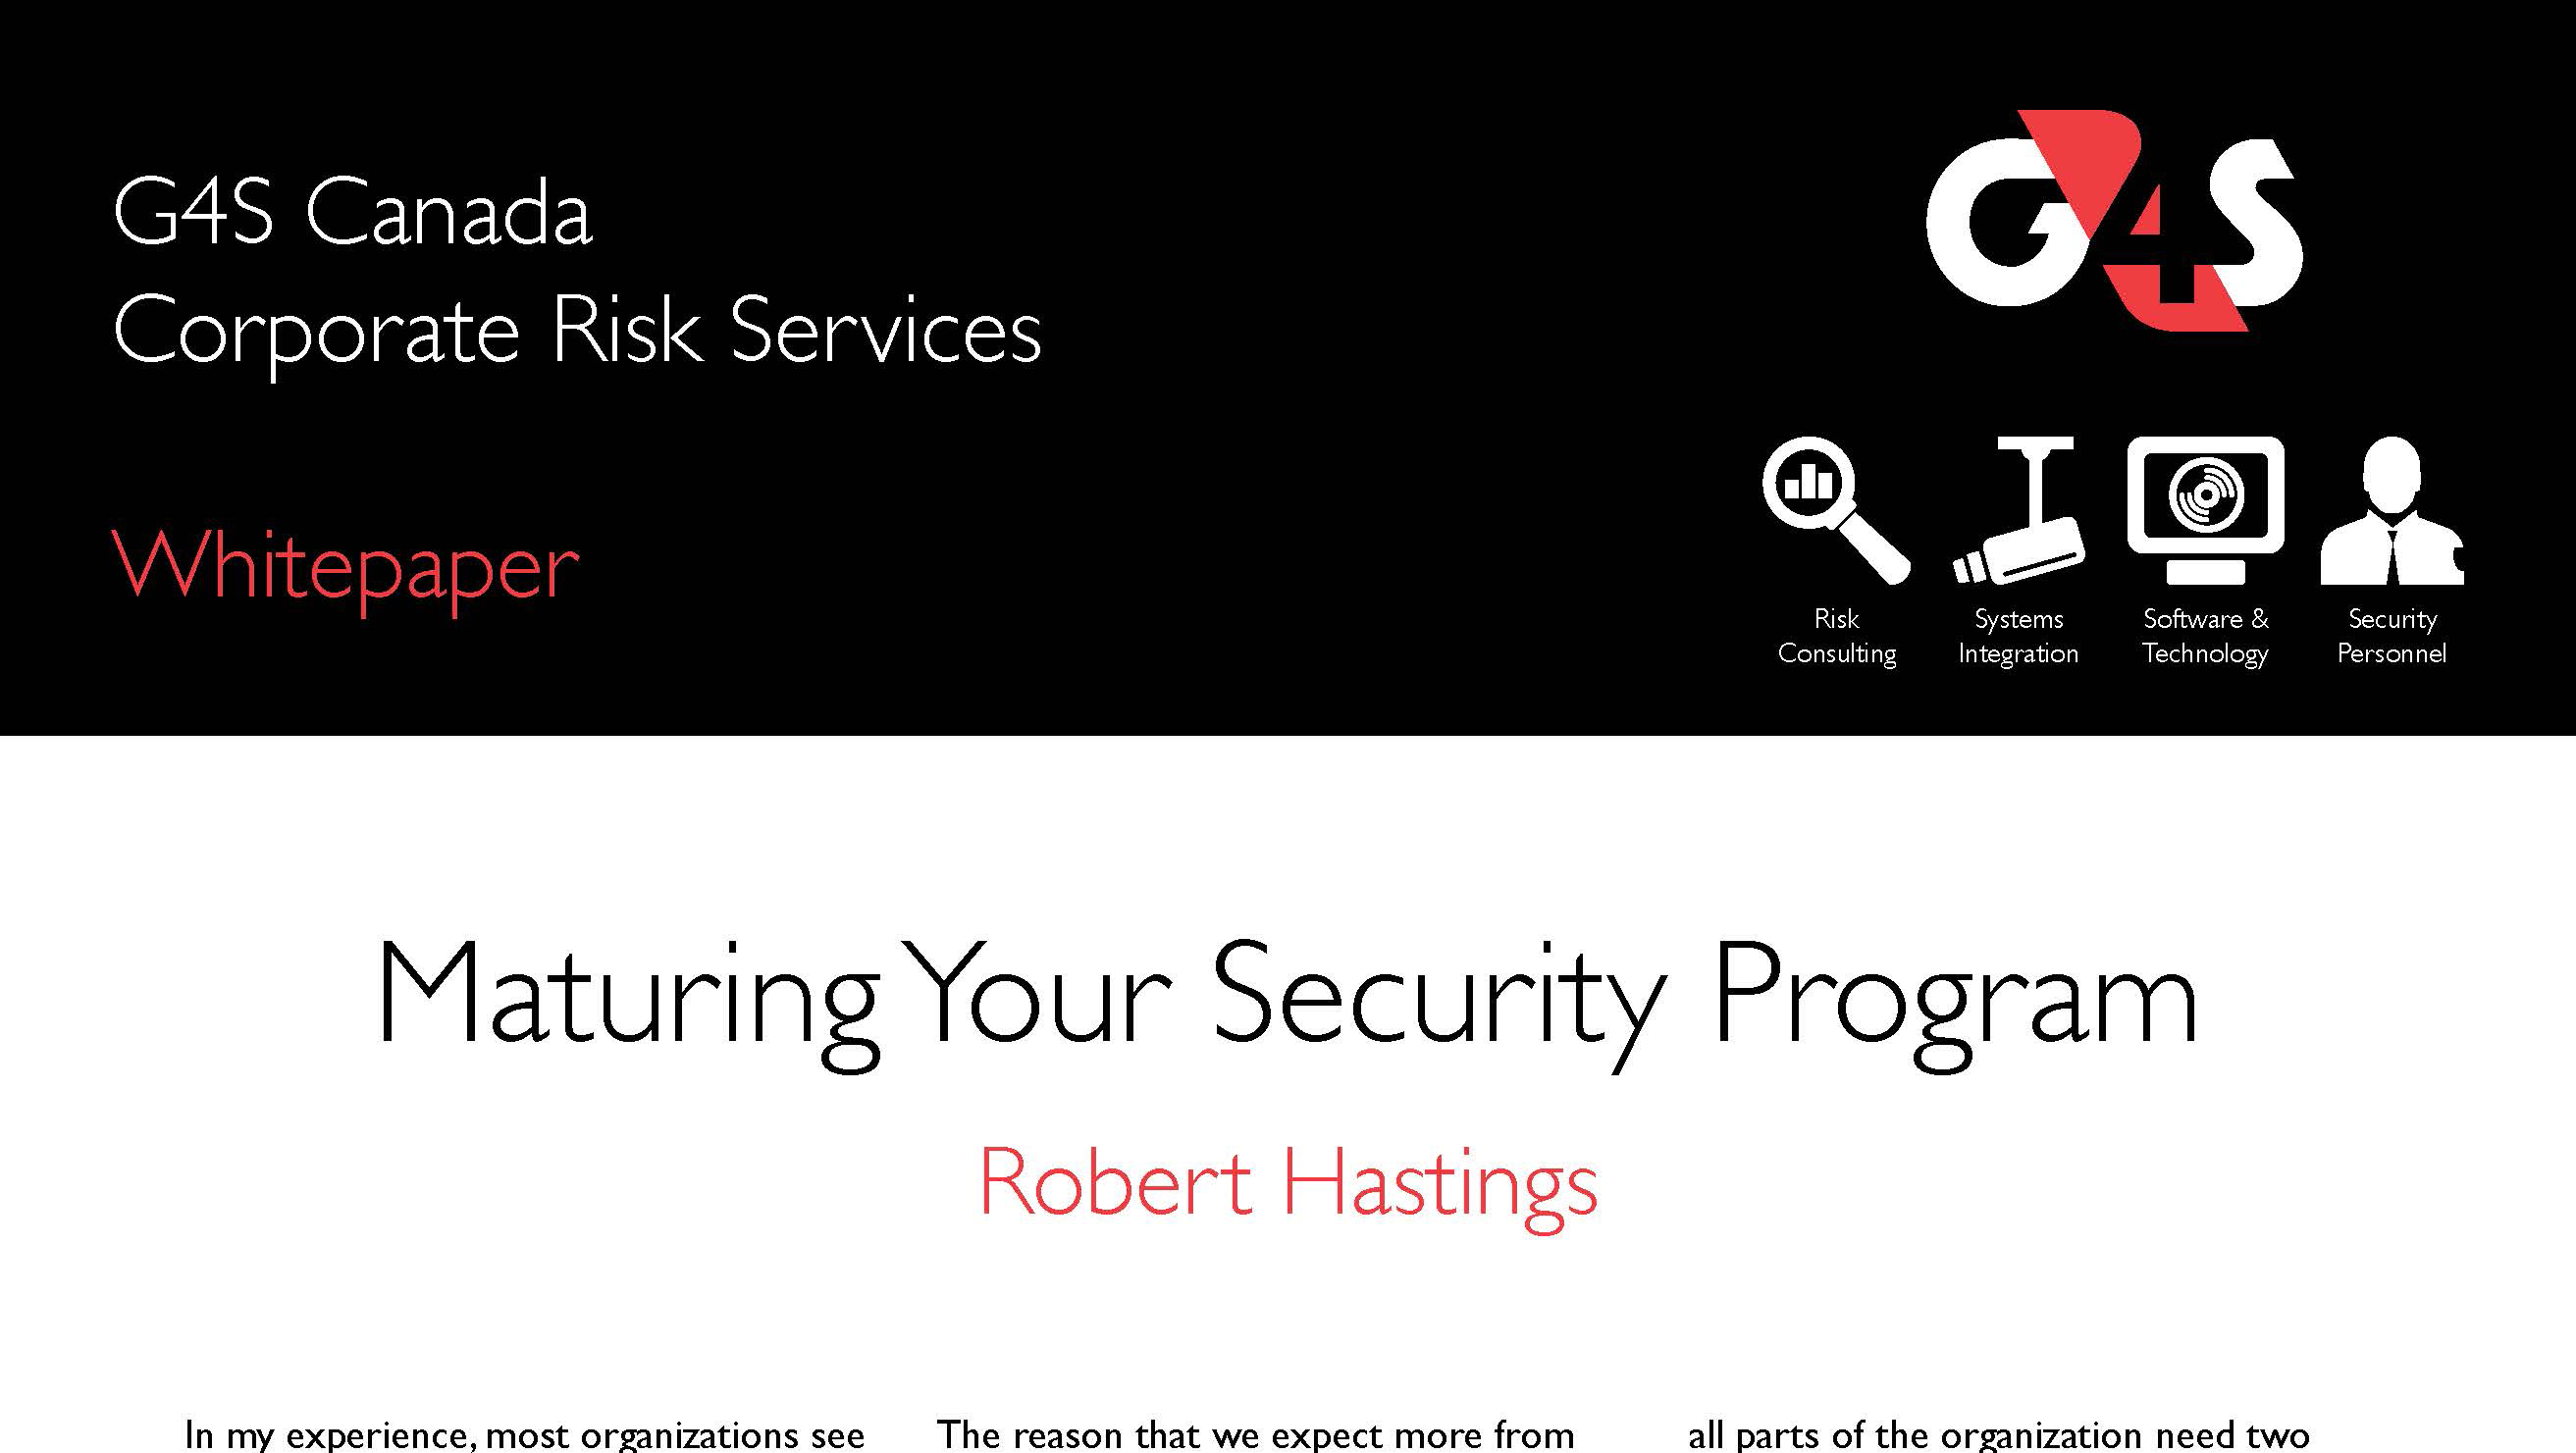 Maturing your security program